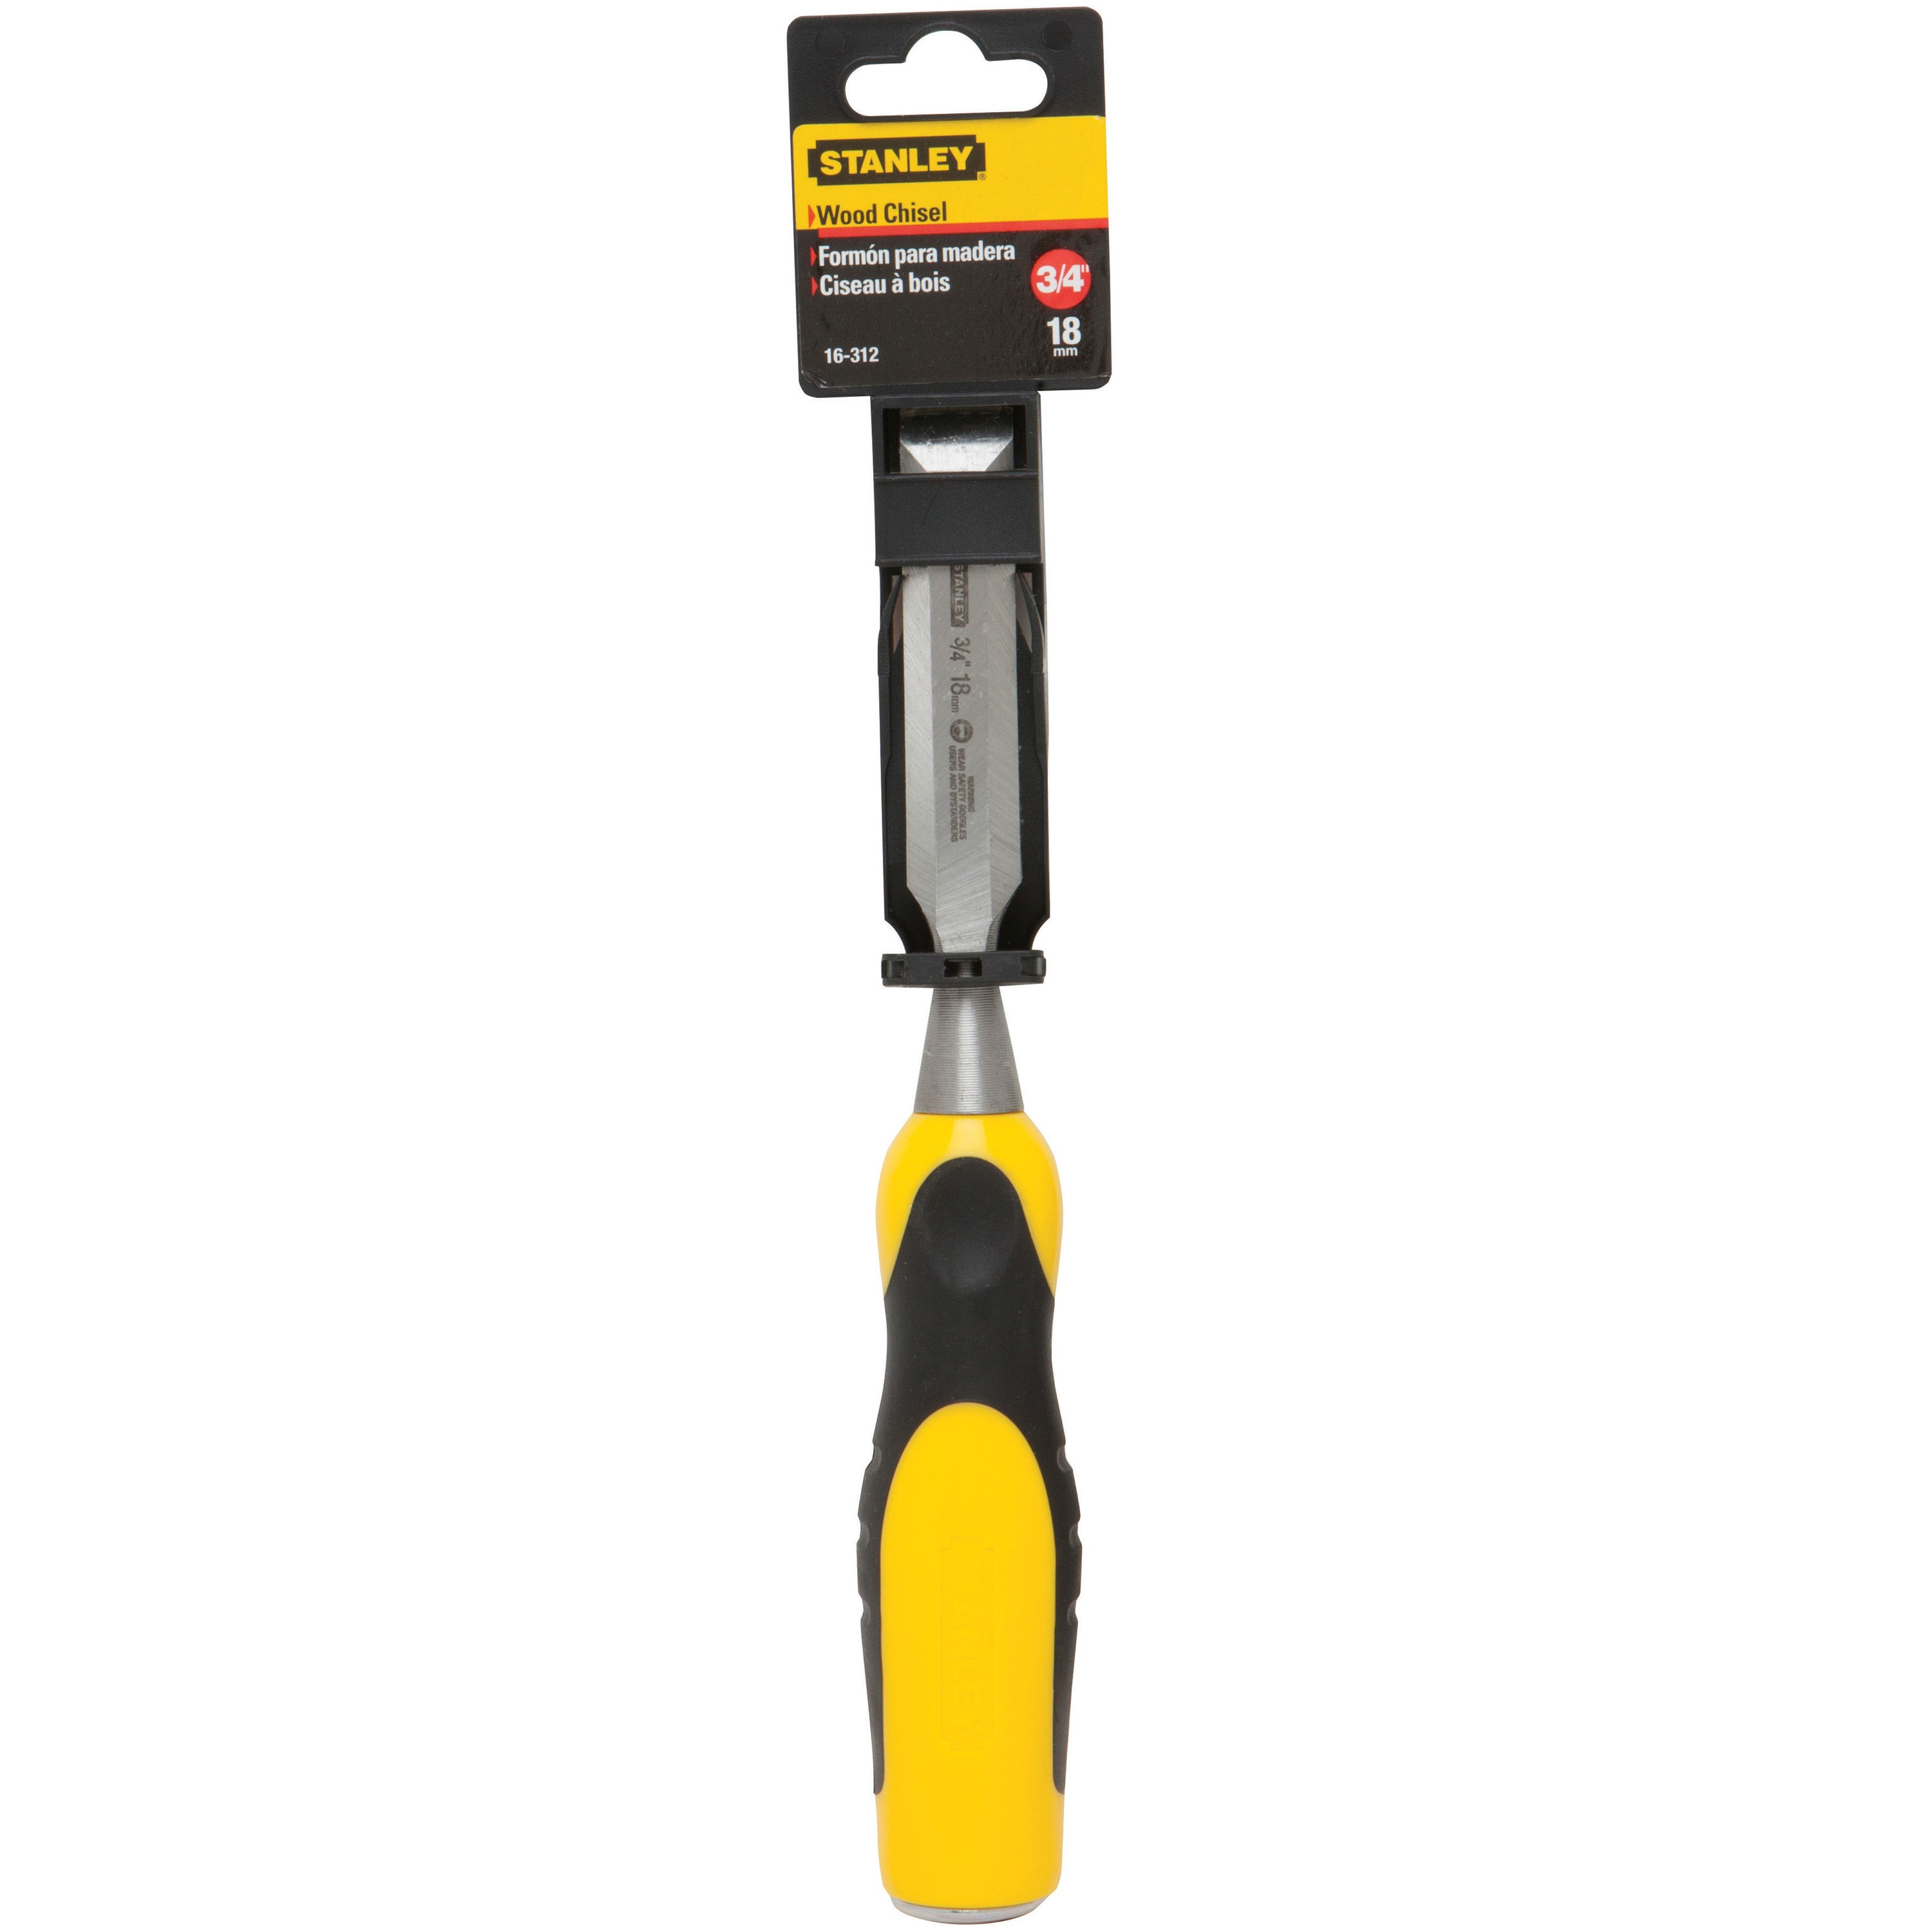 Stanley Tools - 34 in Wood Chisel - 16-312